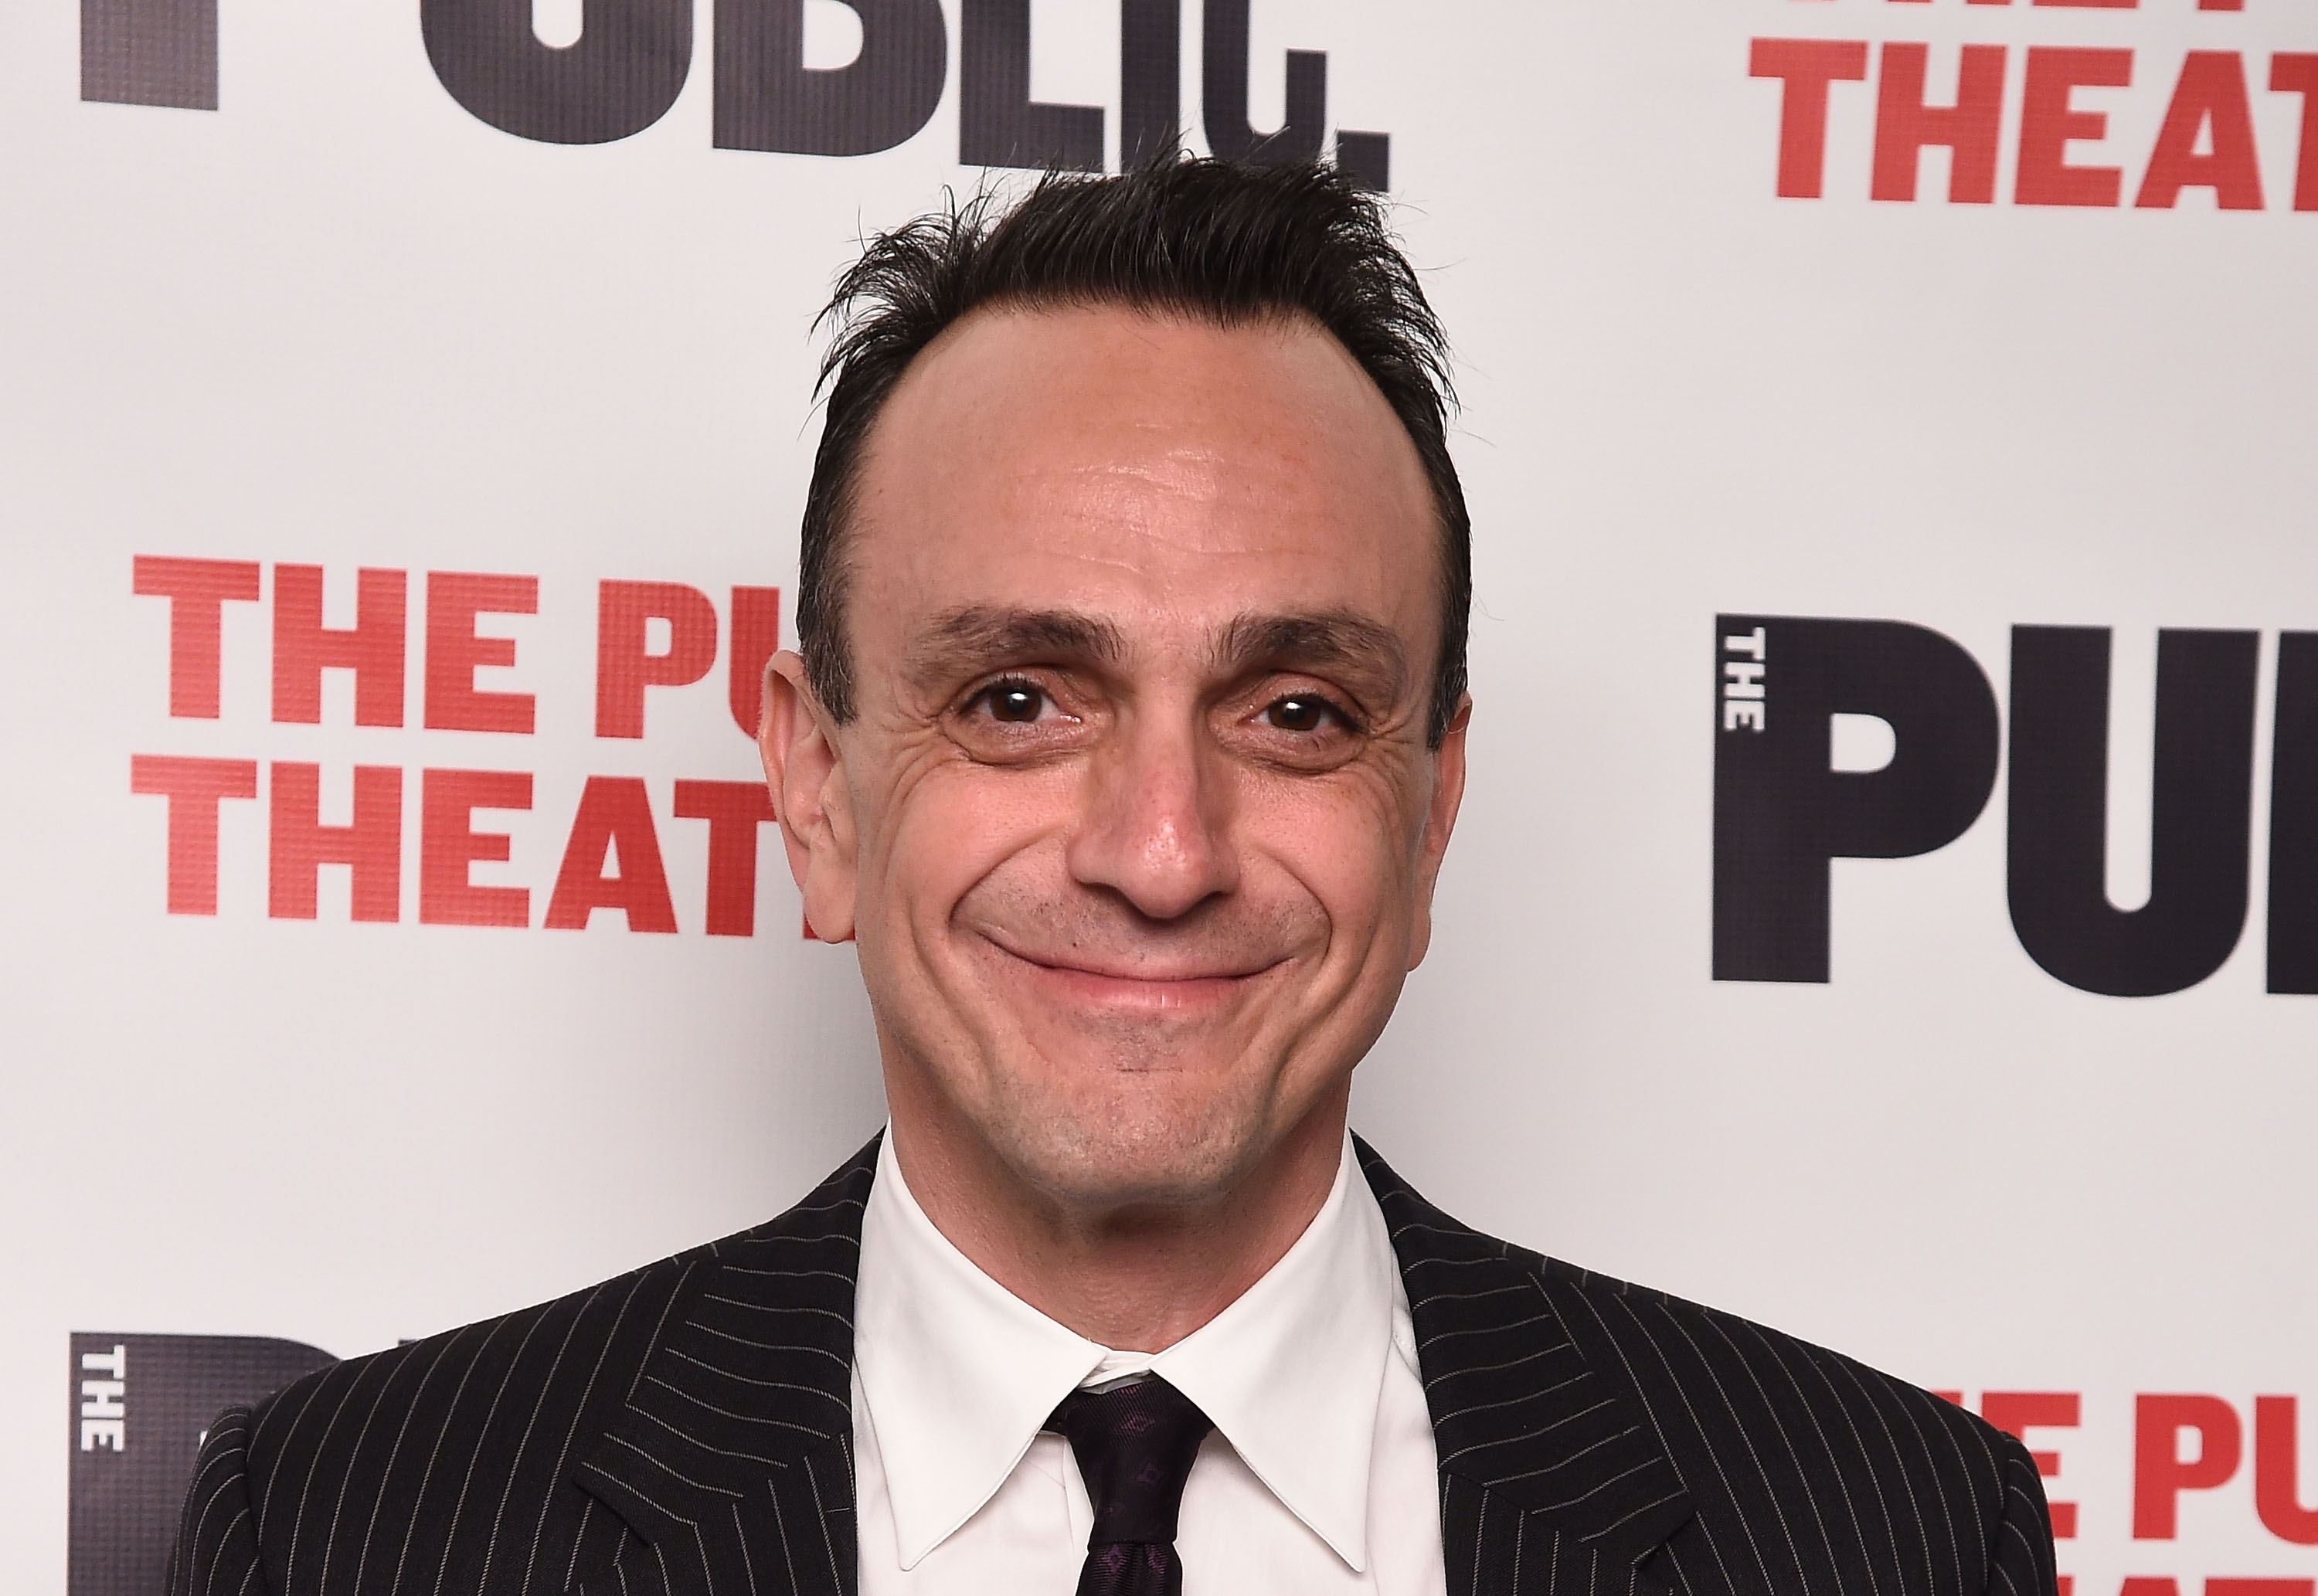 Actor Hank Azaria  attends  Dry Powder  Opening Night at The Public Theater on March 22, 2016 in New York City.